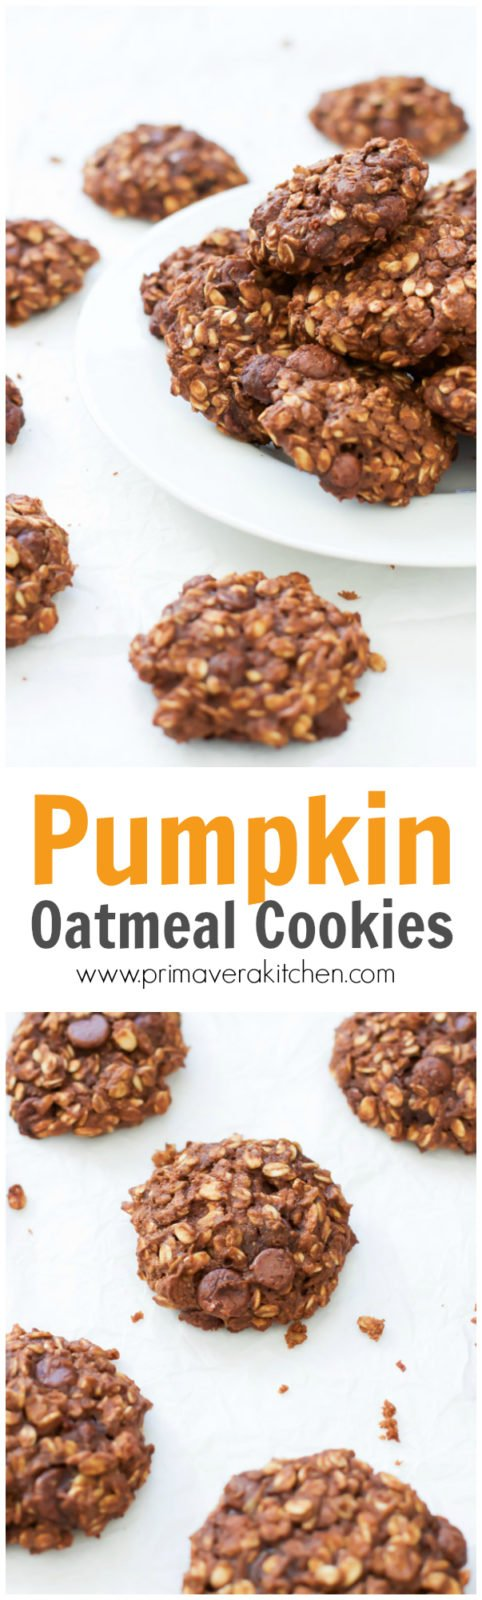 Completely Sugar Free Pumpkin Oatmeal Cookies Recipe ...